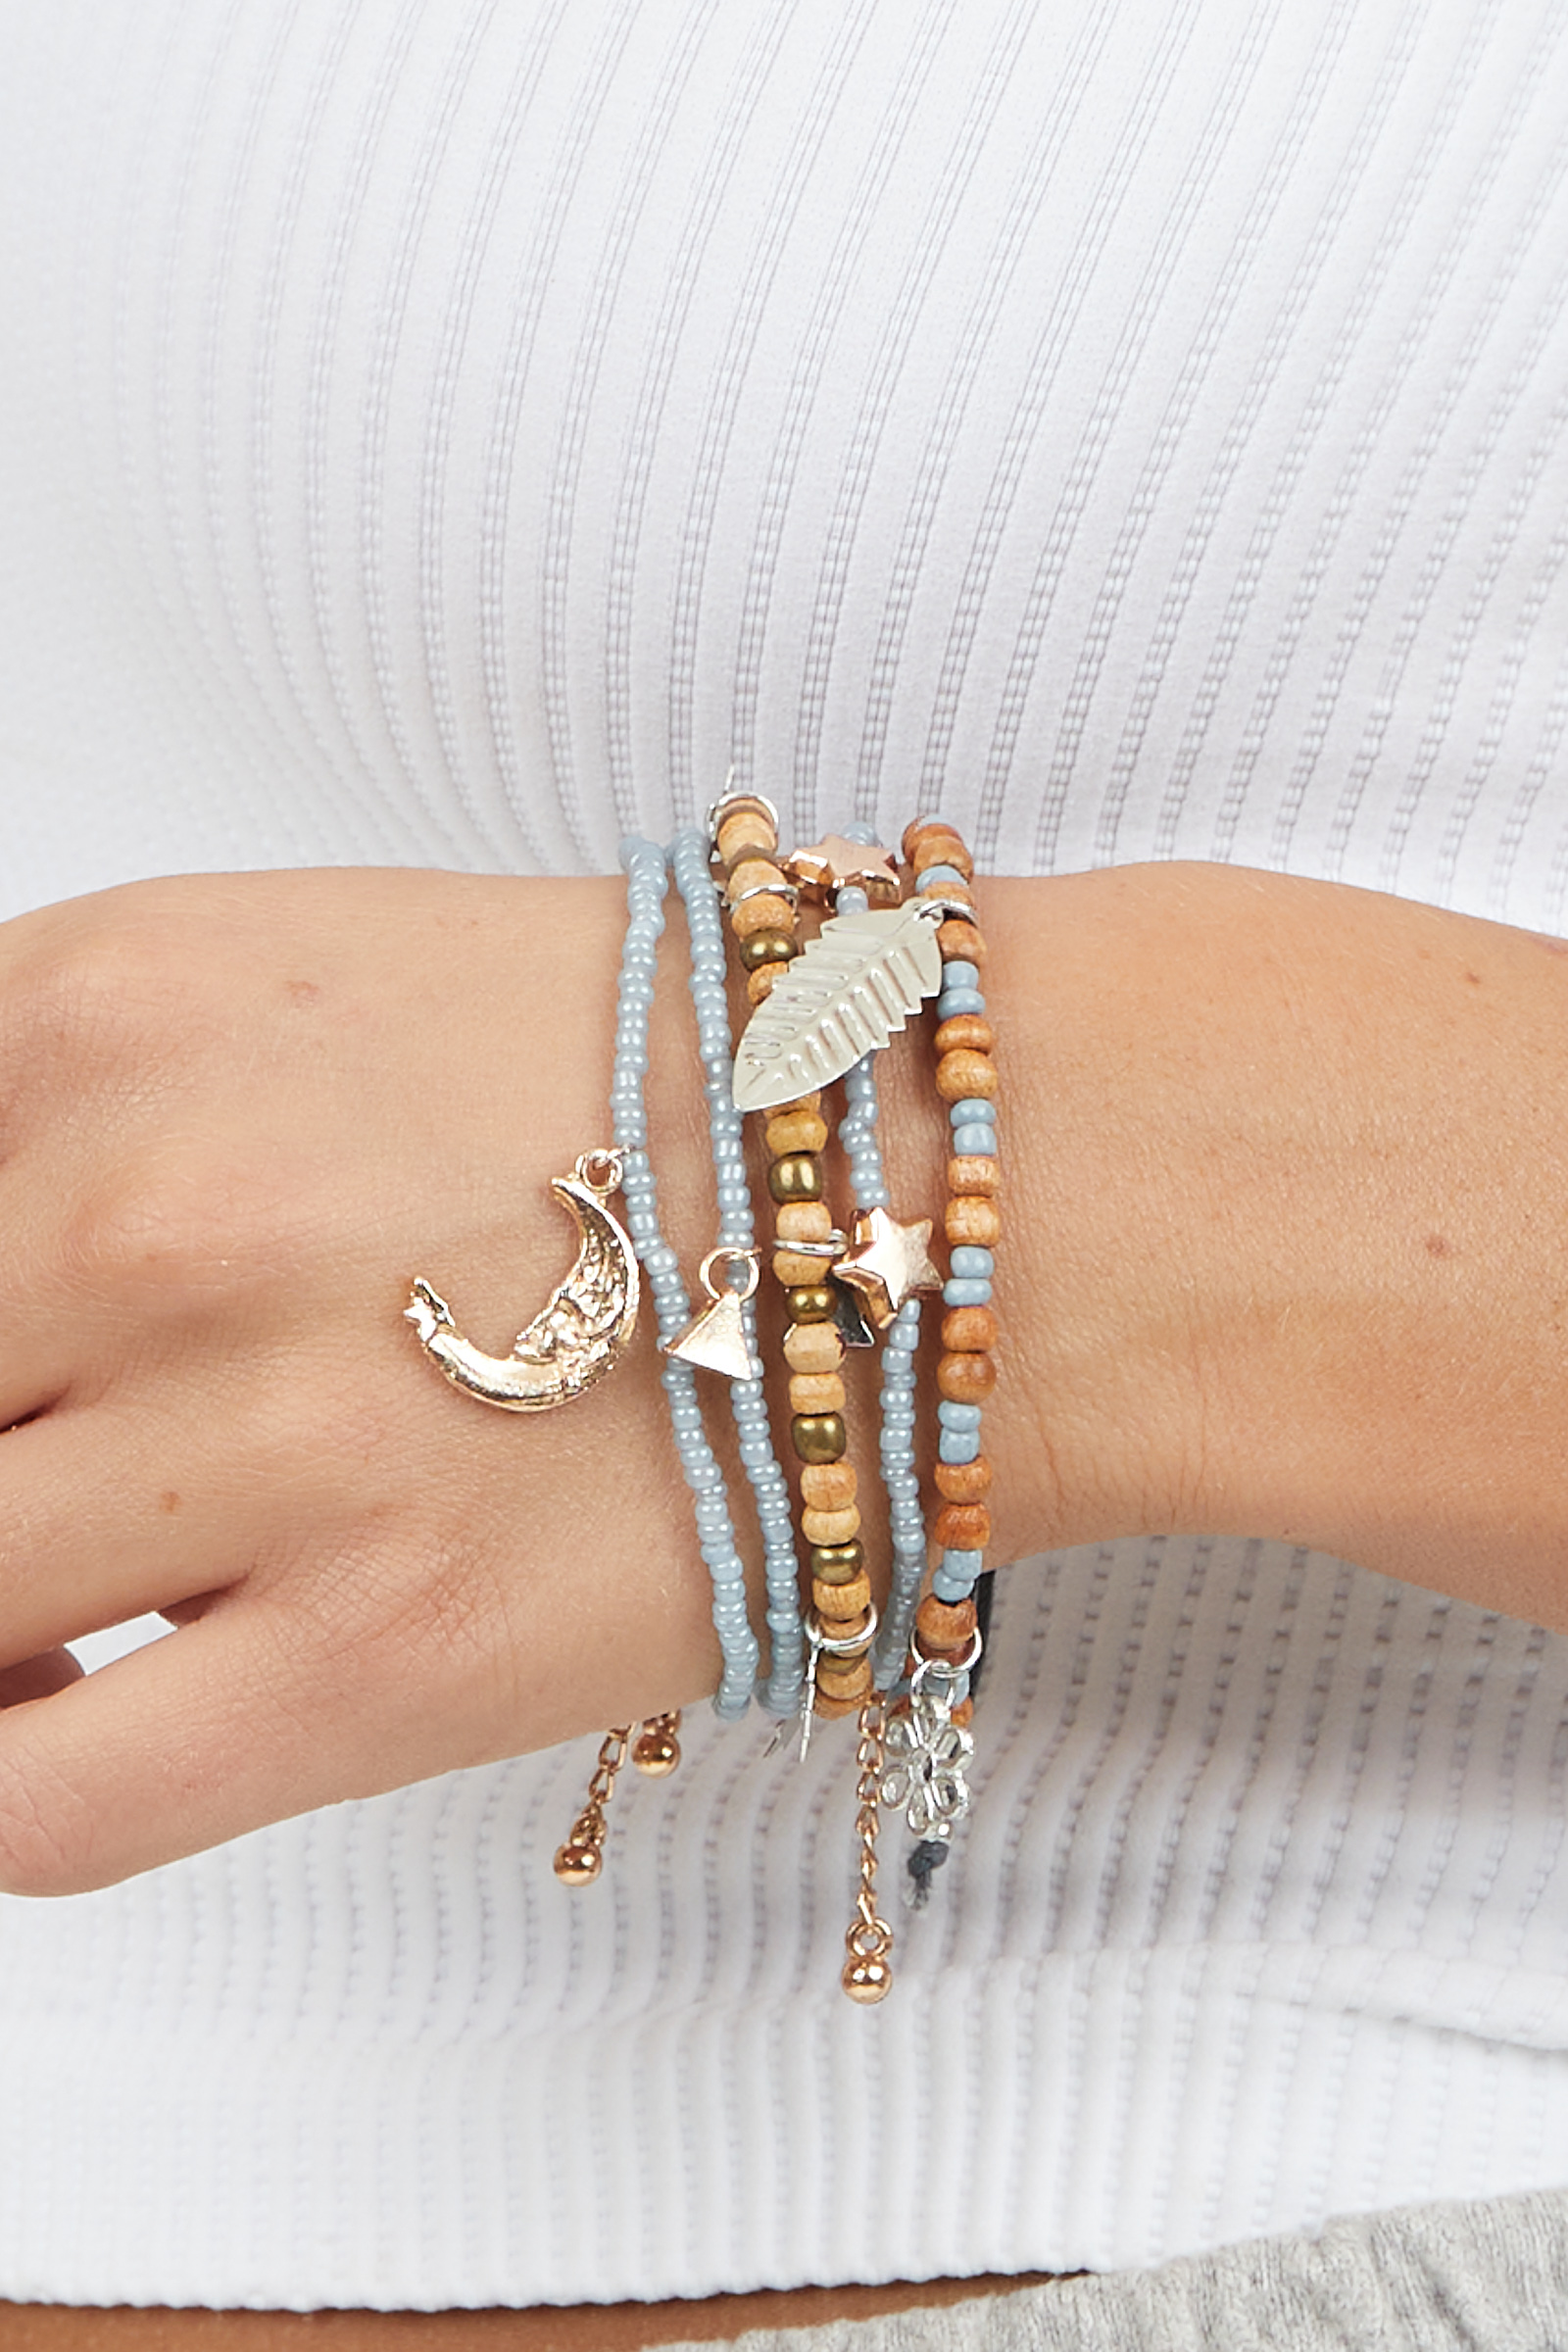 Dusty Blue and Wooden Bead Bracelet Set with Charm